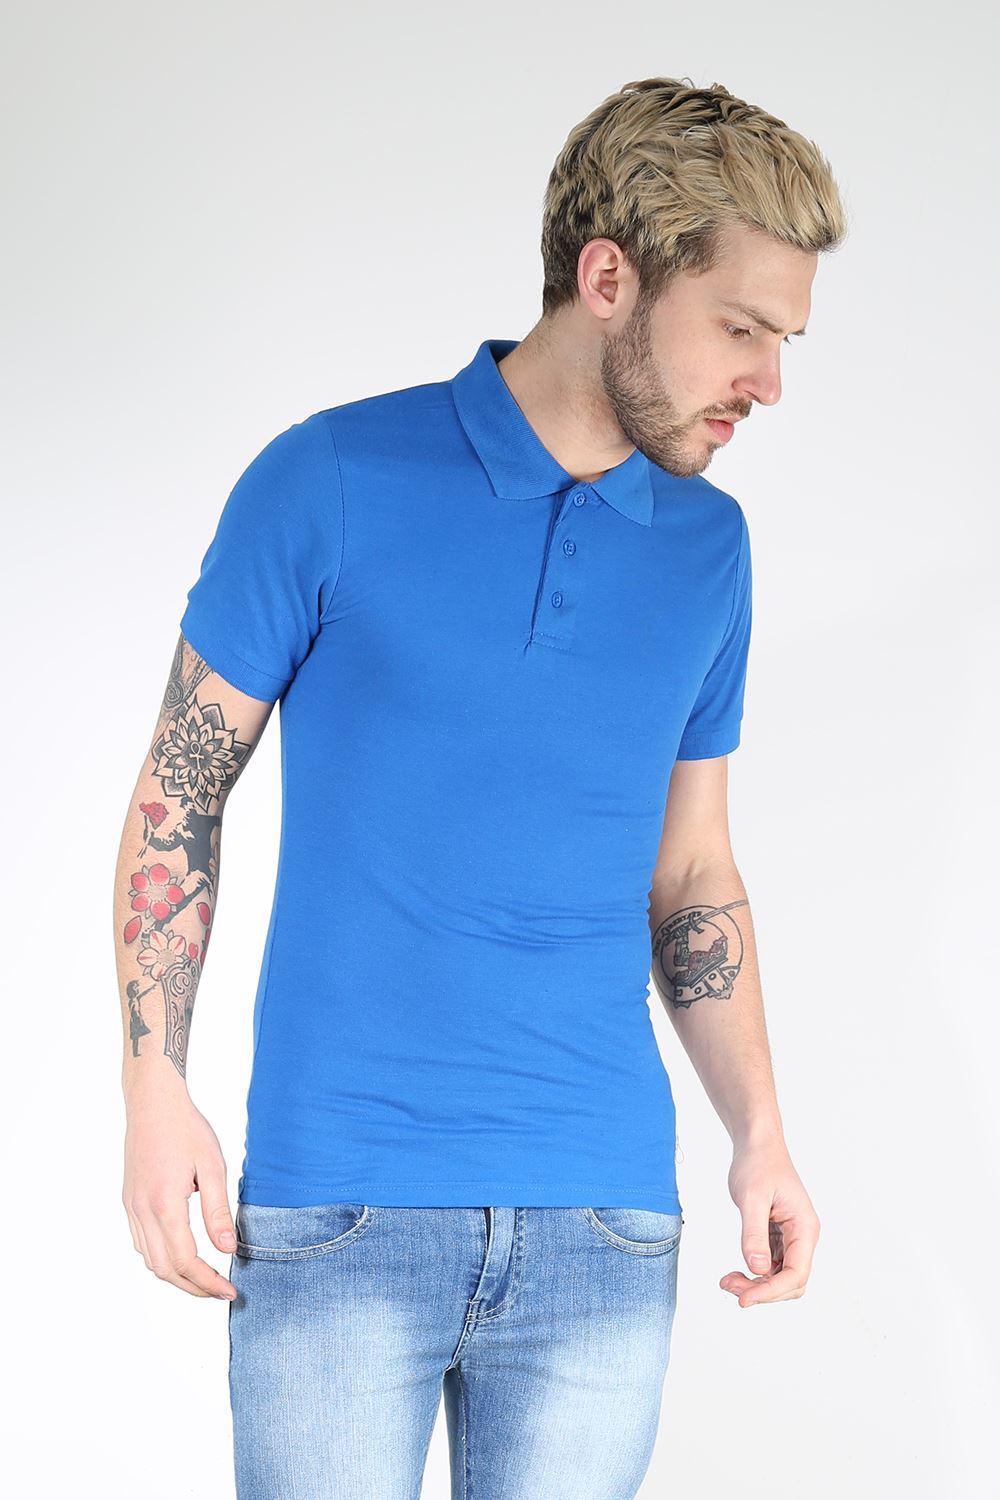 Mens polo t shirt cuffed short sleeves button up collar for Mens button collar shirts